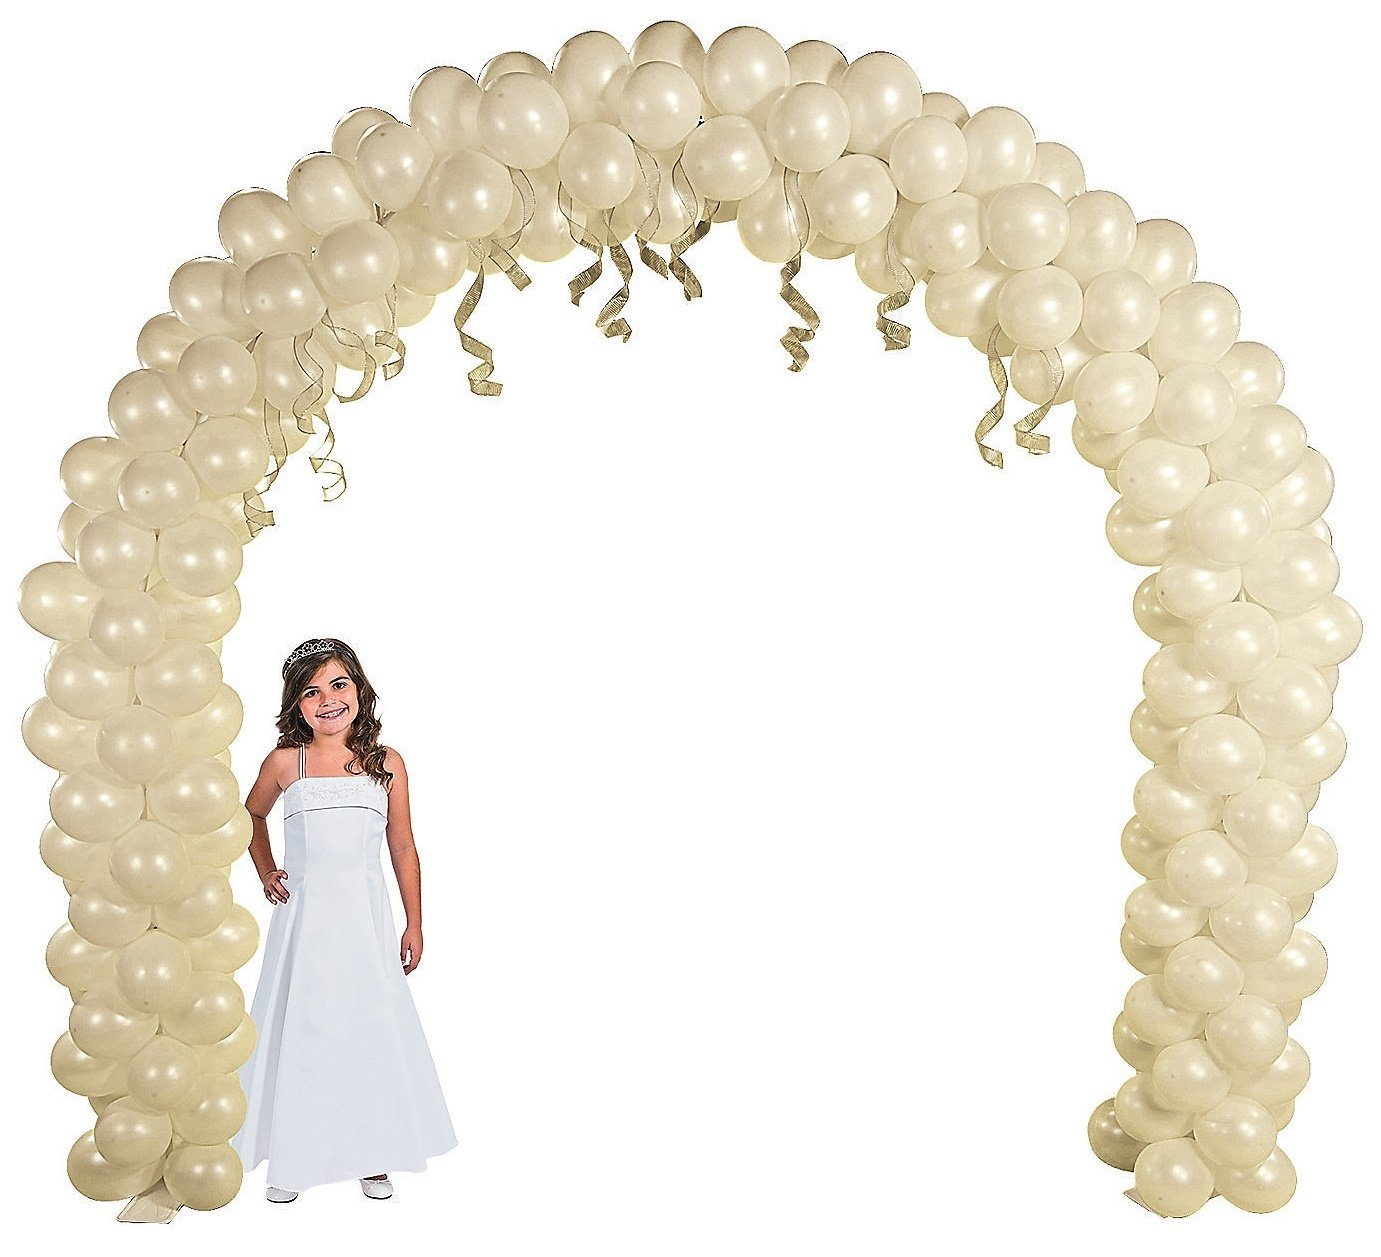 Balloon Frame - Arch (8 Ft. X 9 Ft.) 100 Balloons to Fill Arch. Weddings, Proms, Bat- Mitzvah, Birthday Party